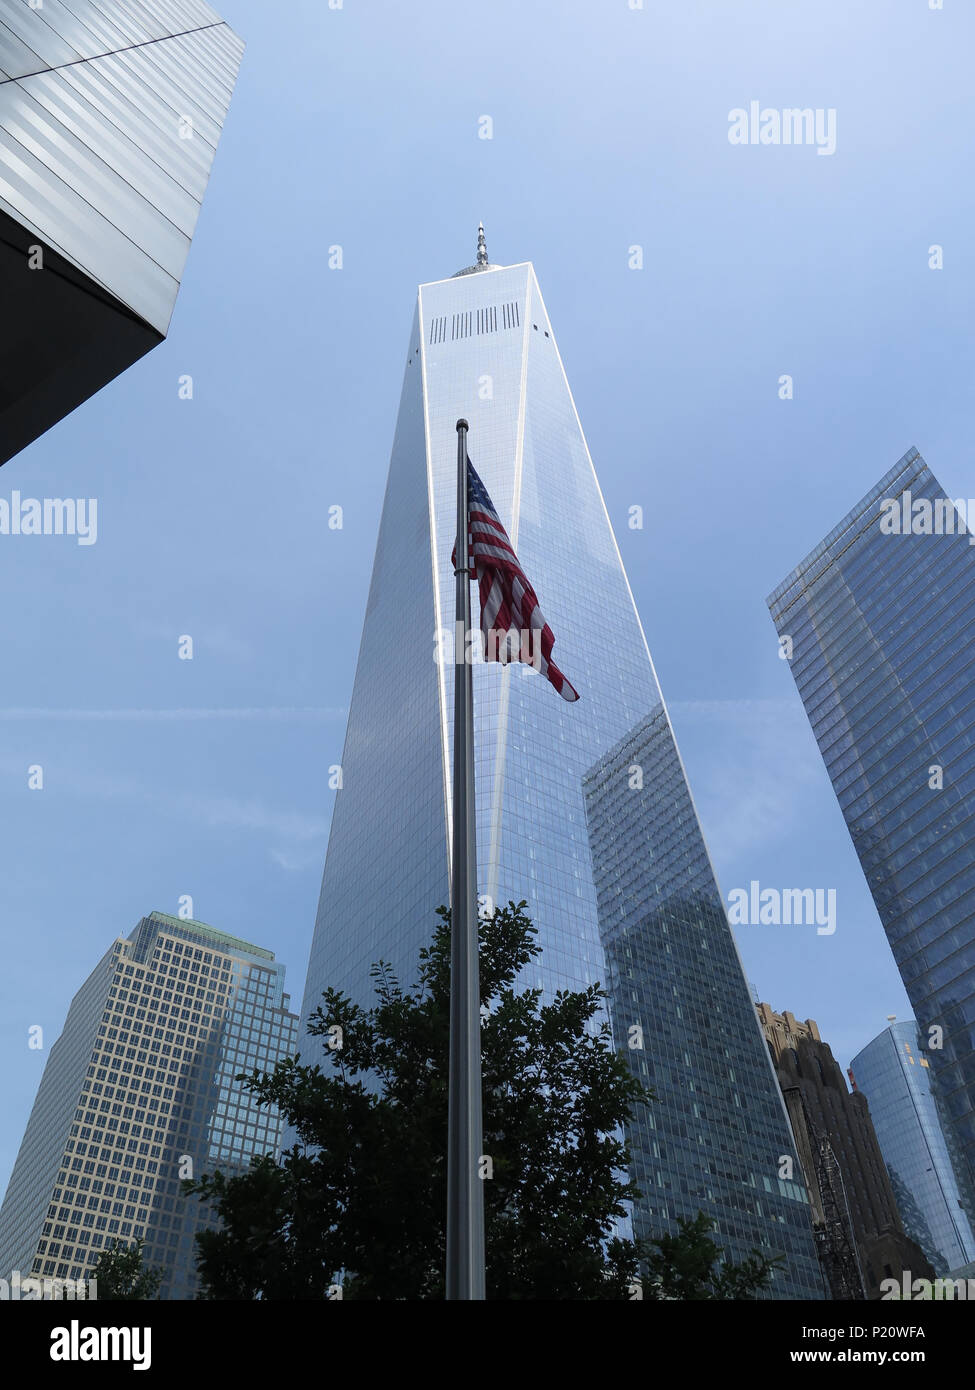 One World Trade Center / Freedom Tower - Stock Image